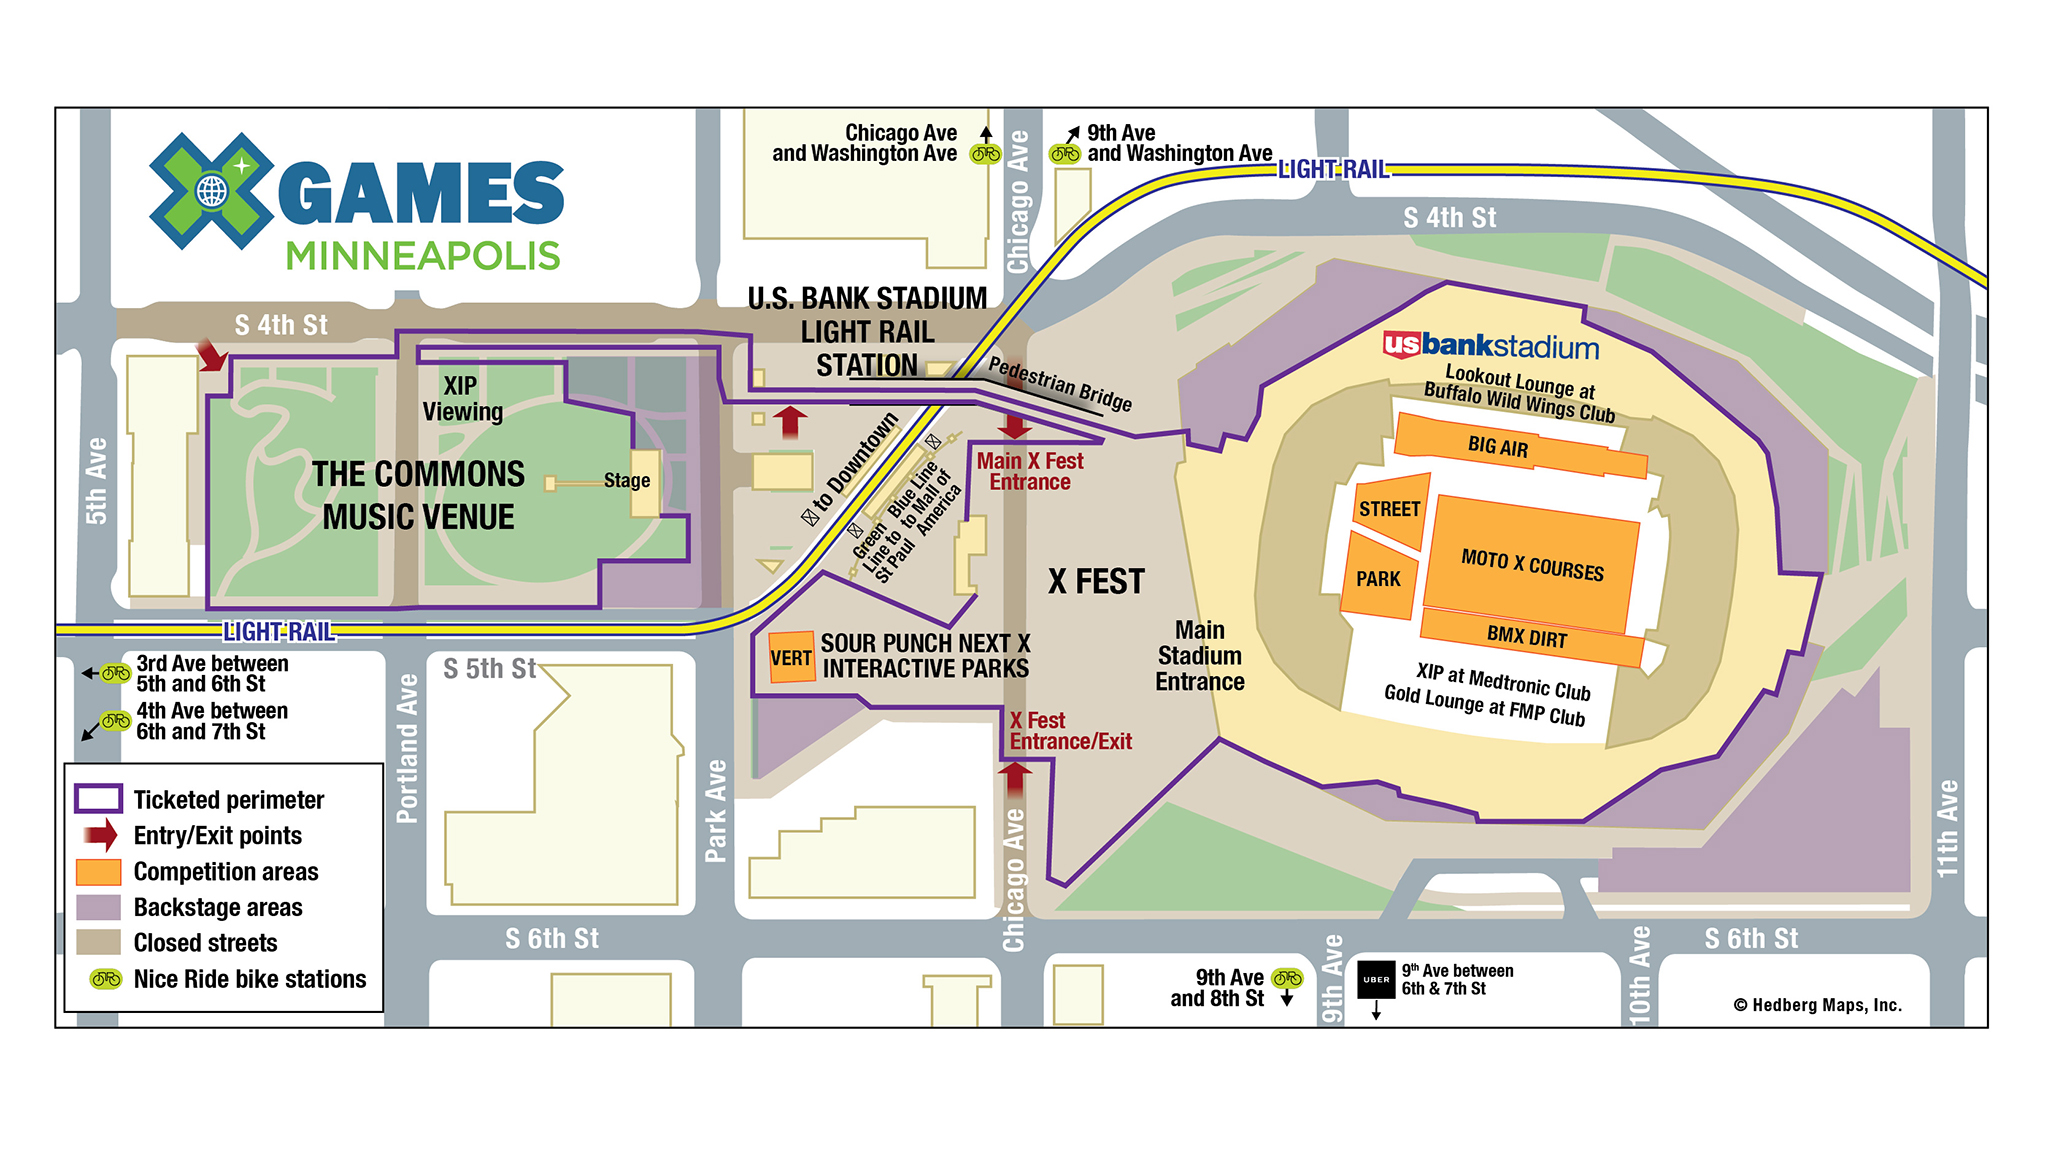 X Games Minneapolis Venue Hours Parking And Transportation - Parking map us bank stadium